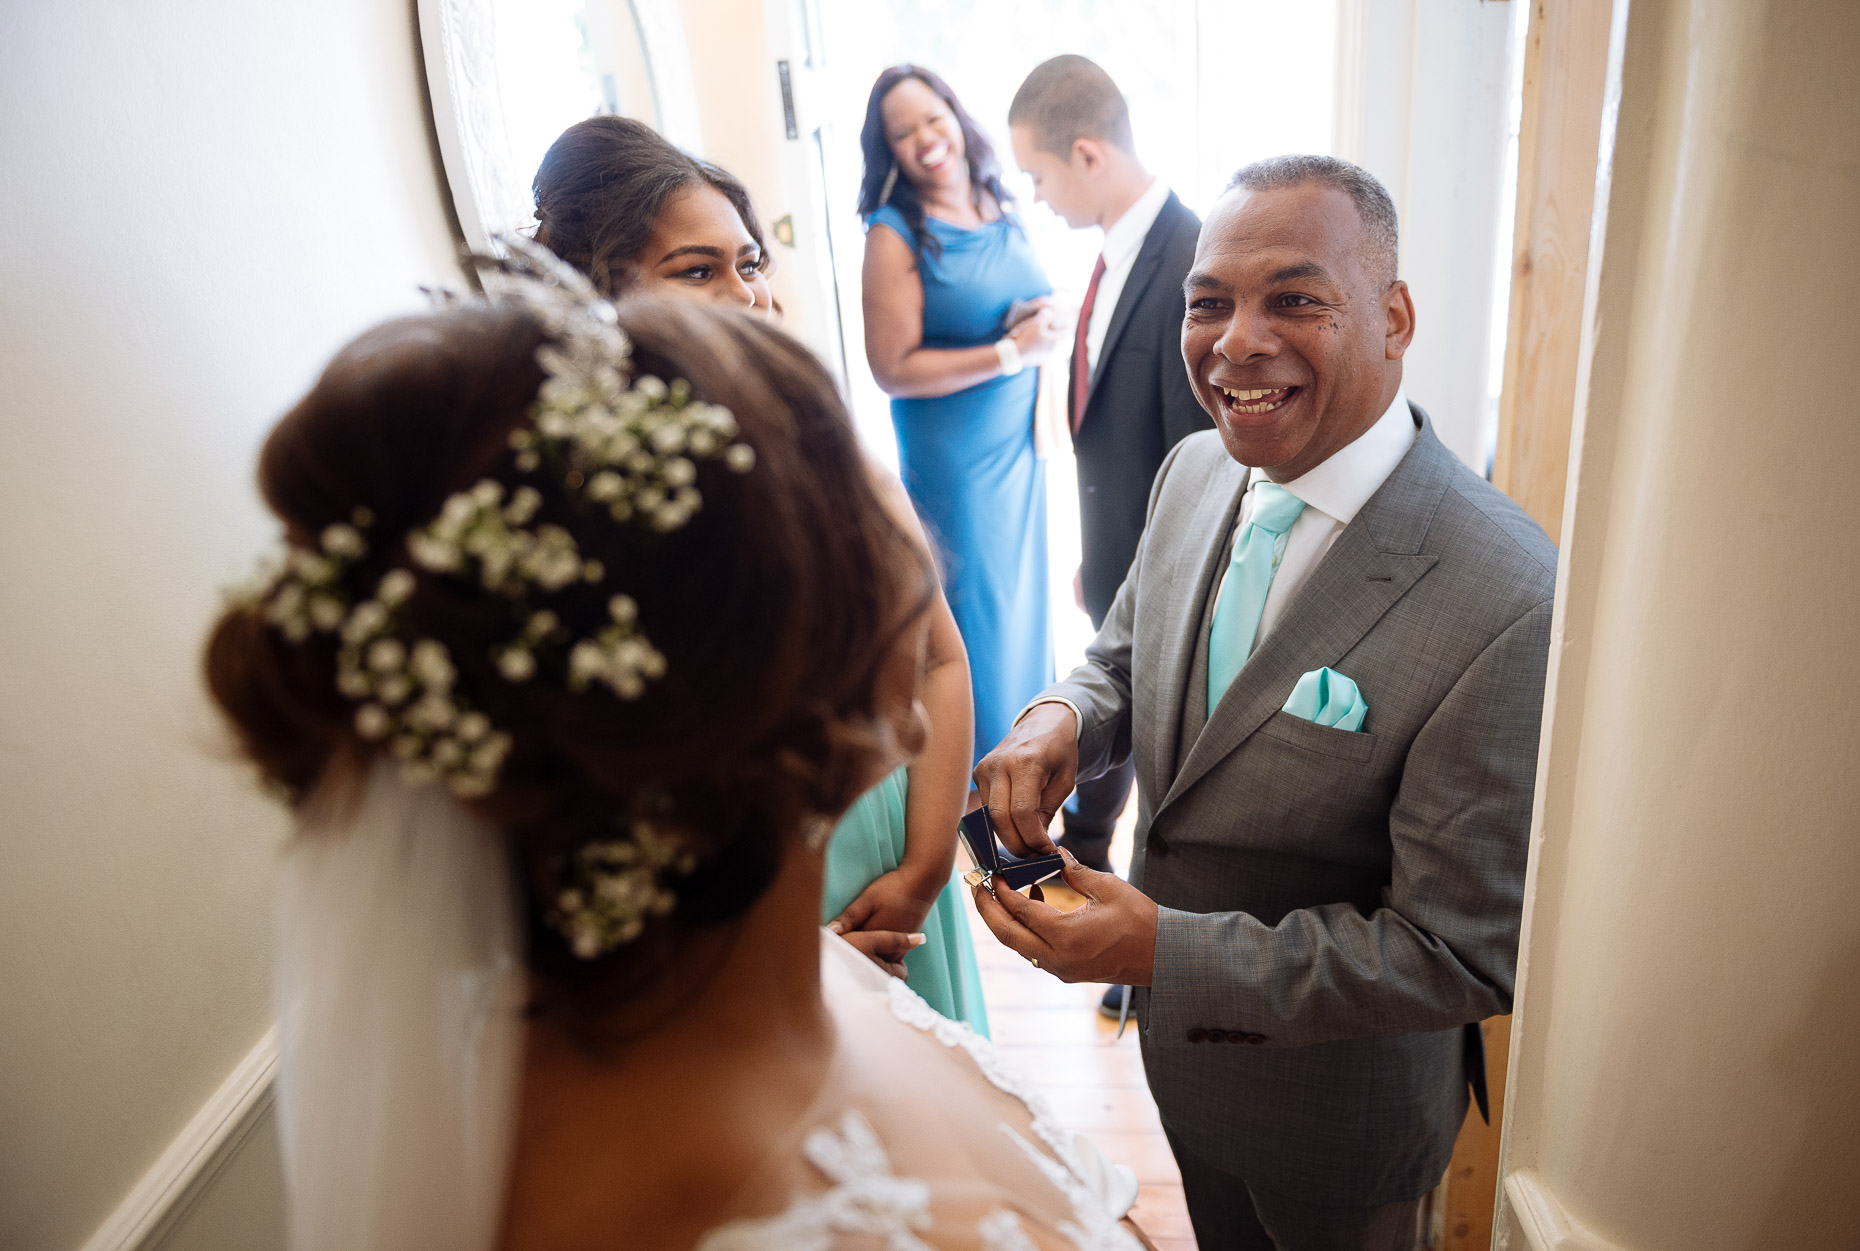 nigerian-wedding-day-london-photographer-reportage-05